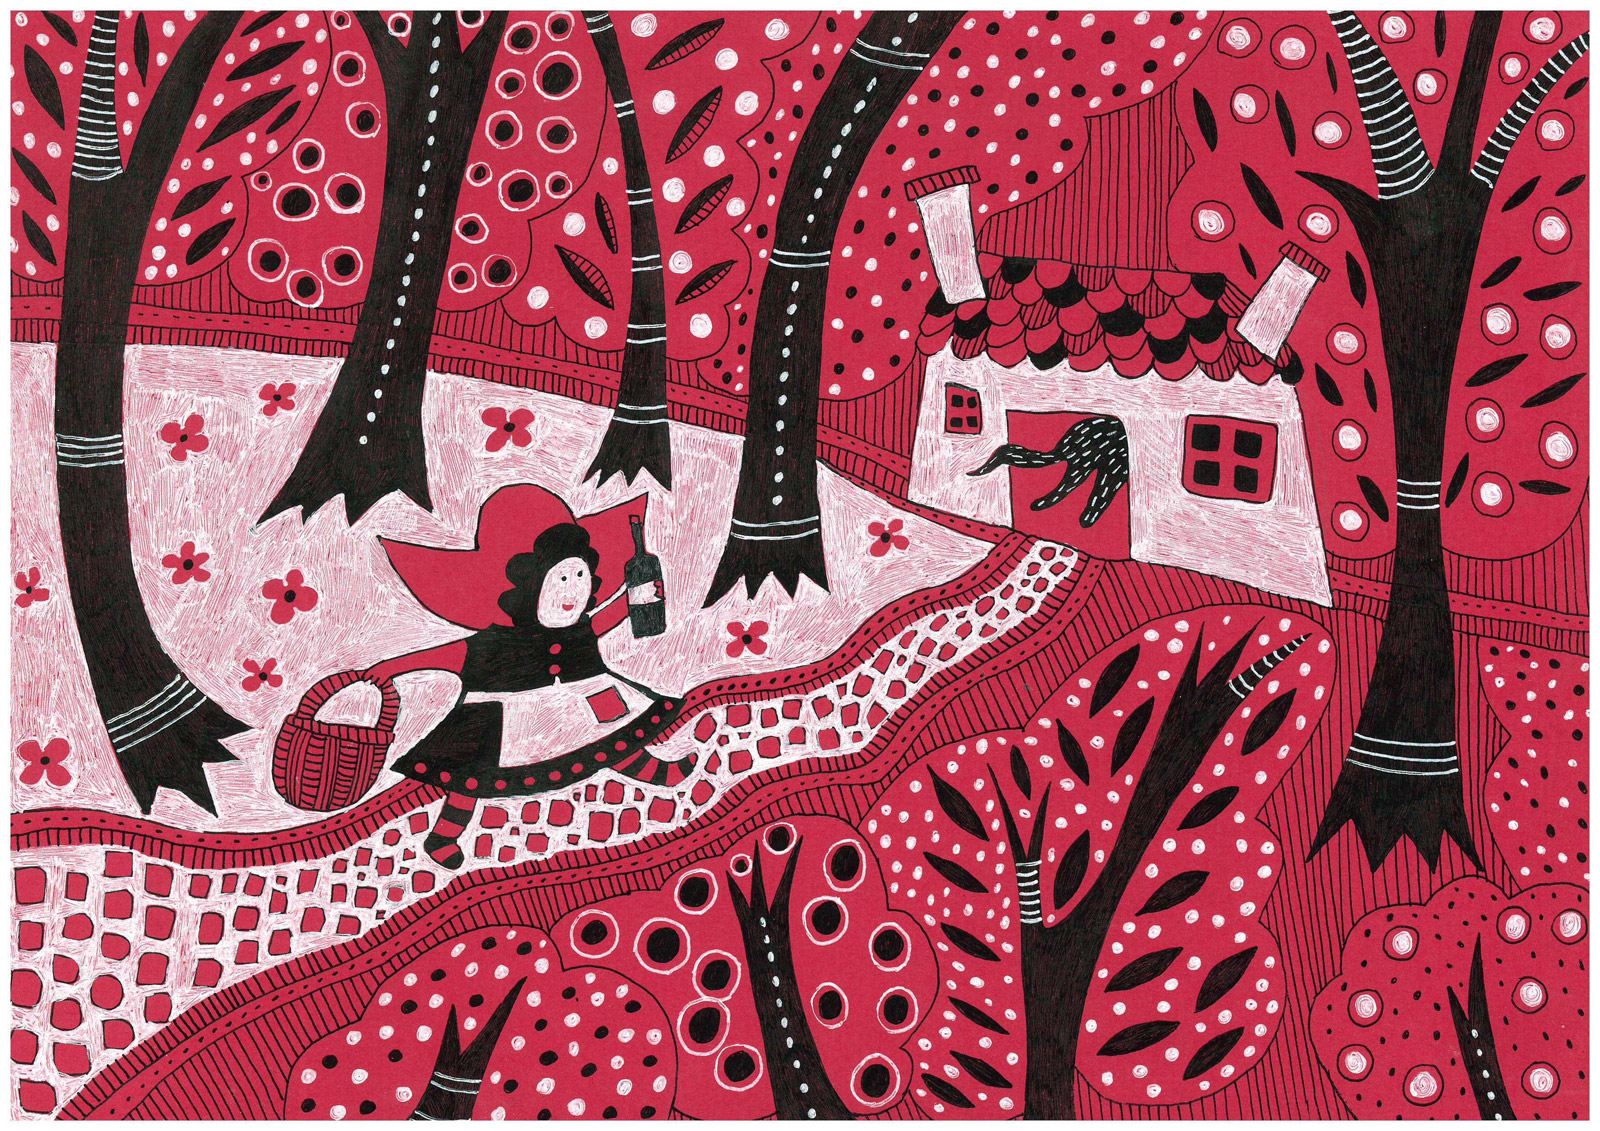 Red Riding Hood, 2014